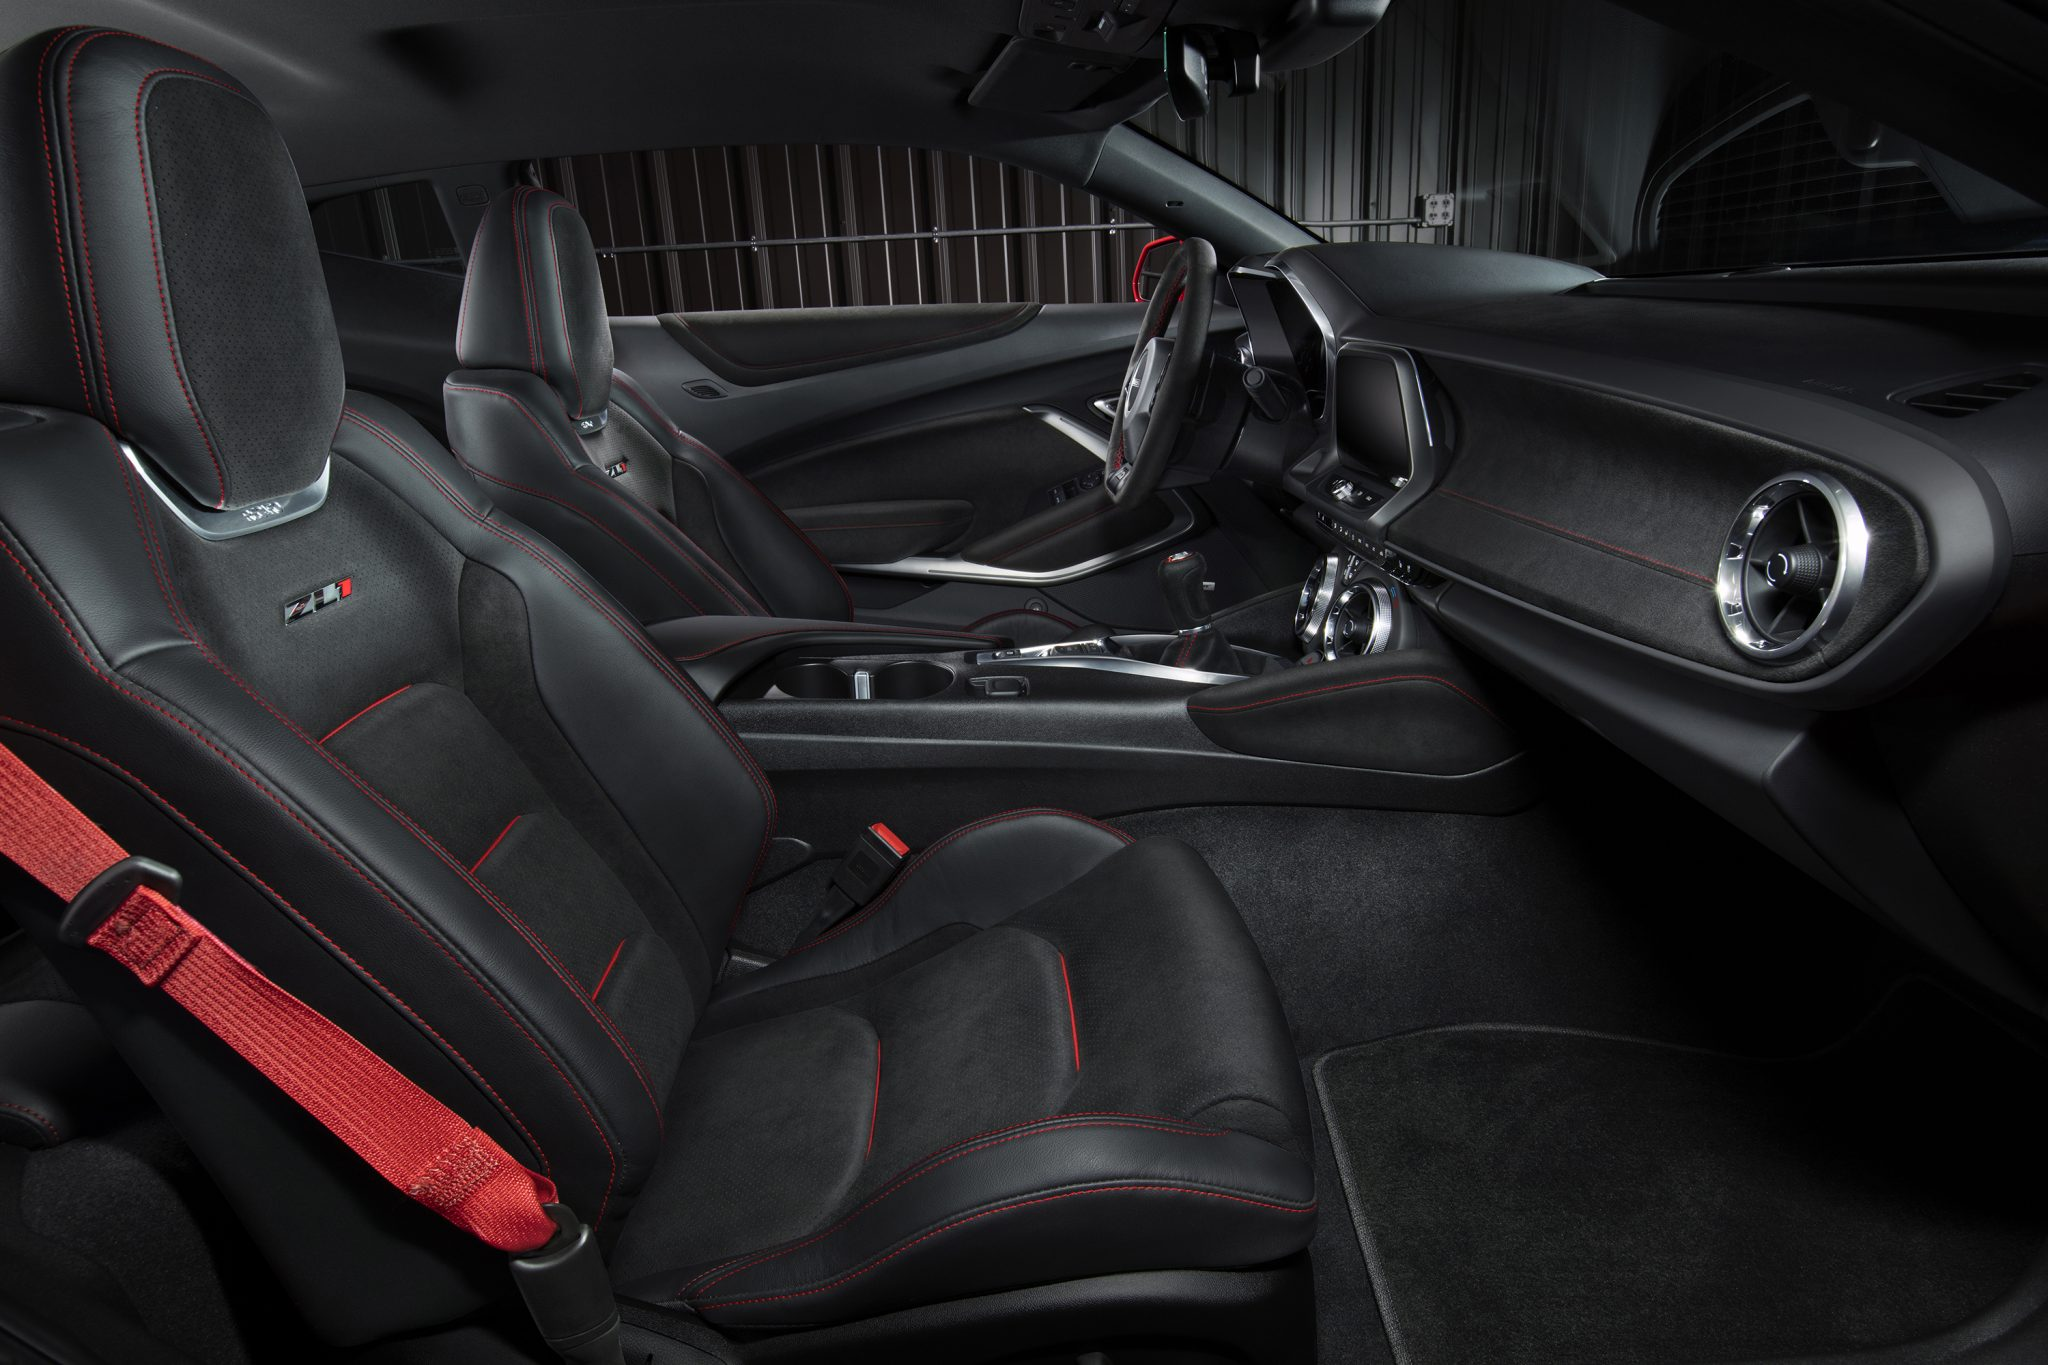 2017 Chevrolet Camaro Zl1 On Gm Fuse Box Diagram 1964 Impala Wire Images Gallery Convertible Debuts At New York Show Rh Automobilemag Com